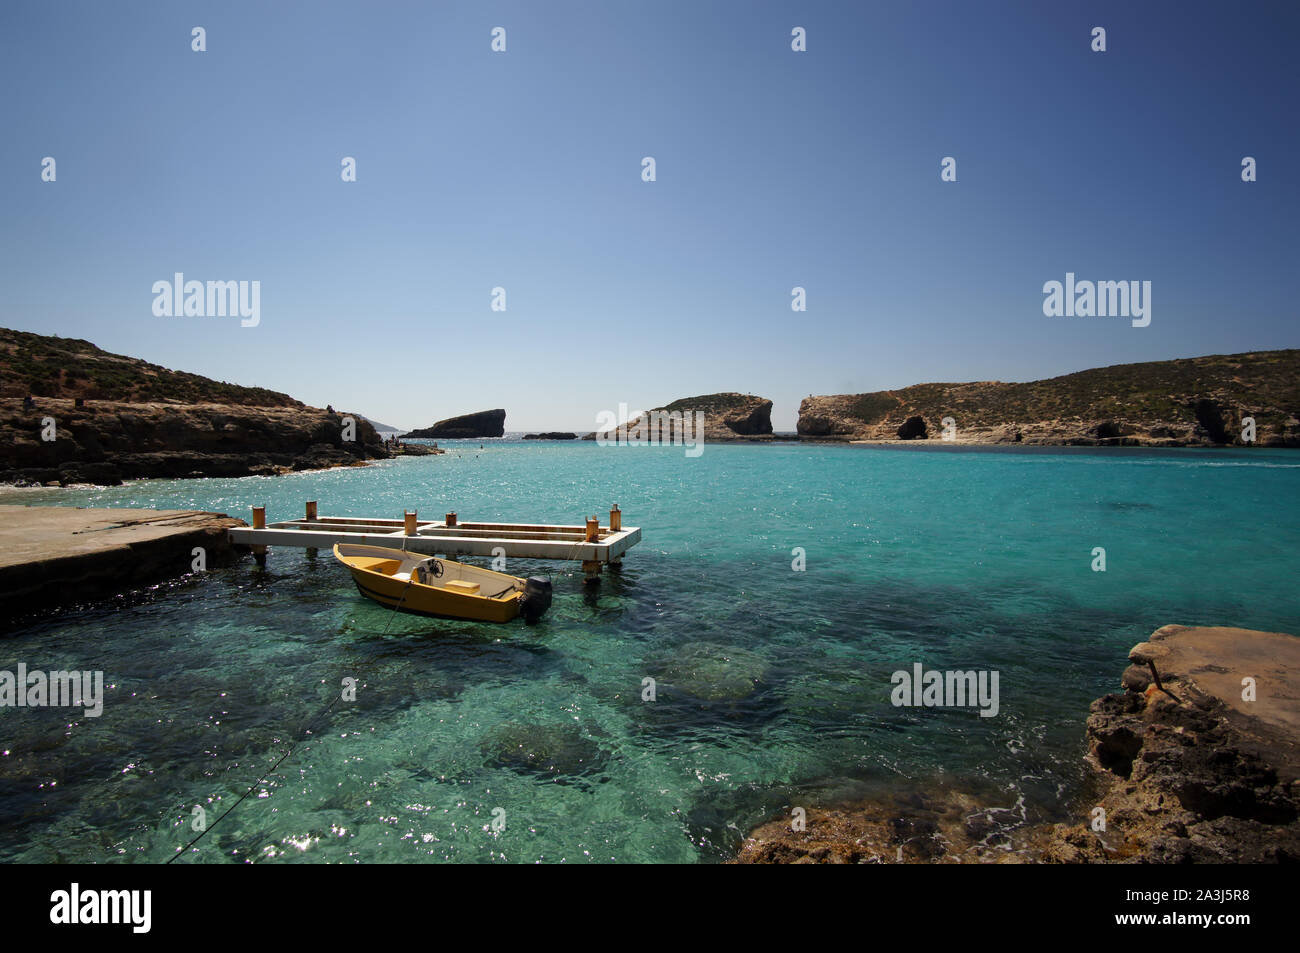 Boat and rocks of Blue Lagoon in Comino, Malta during the winter day Stock Photo